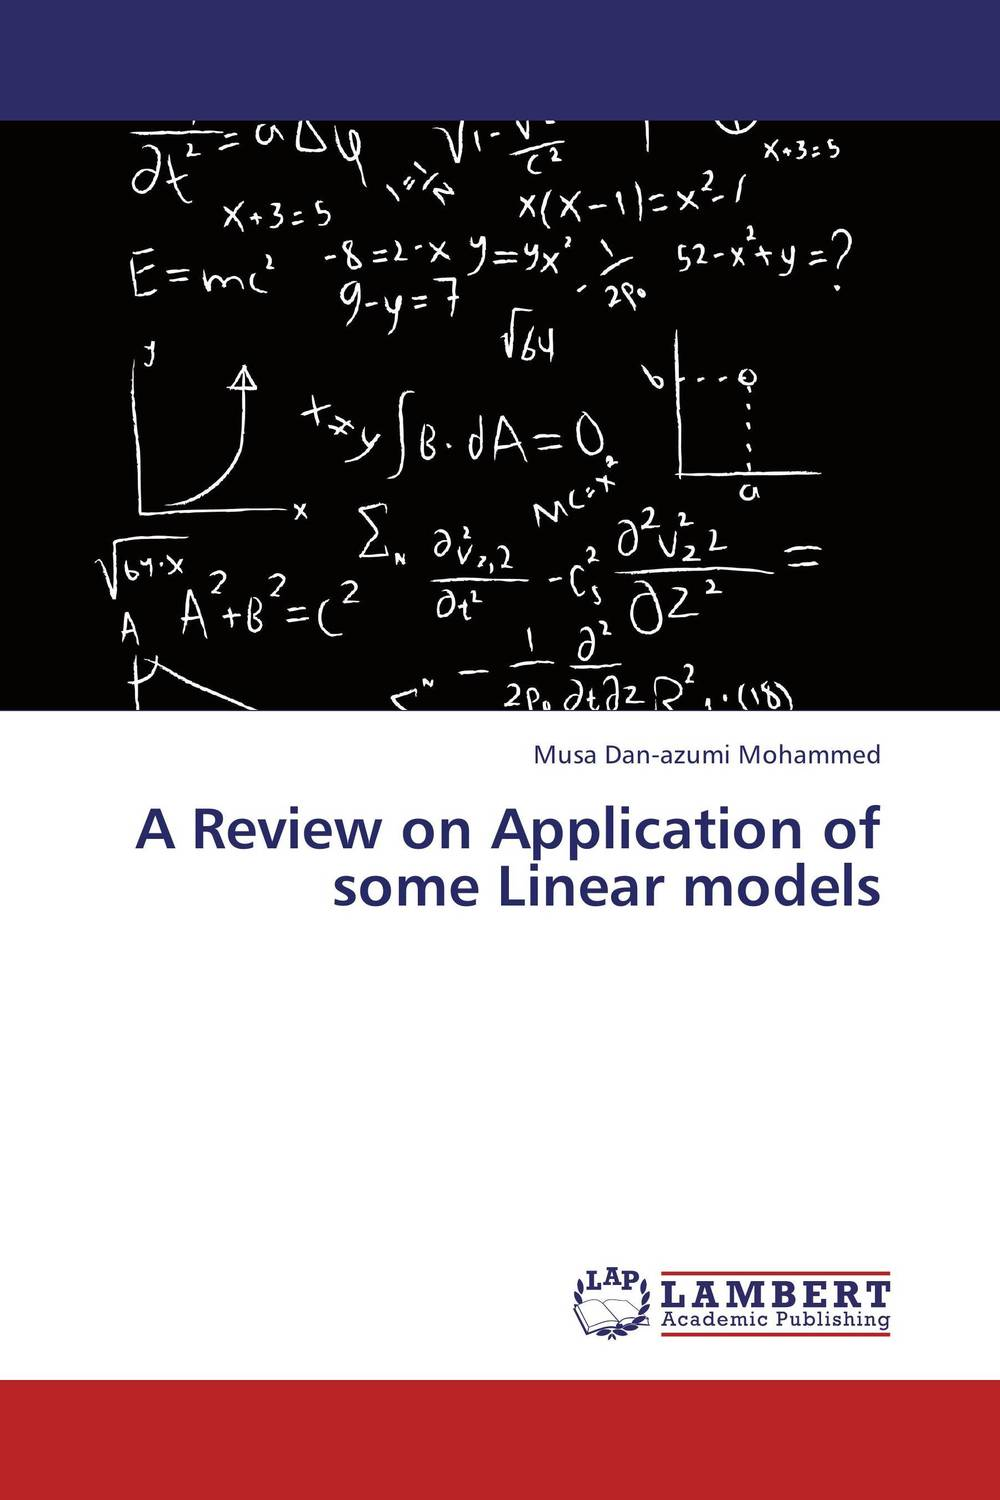 A Review on Application of some Linear models the application of wavelets methods in stefan problem